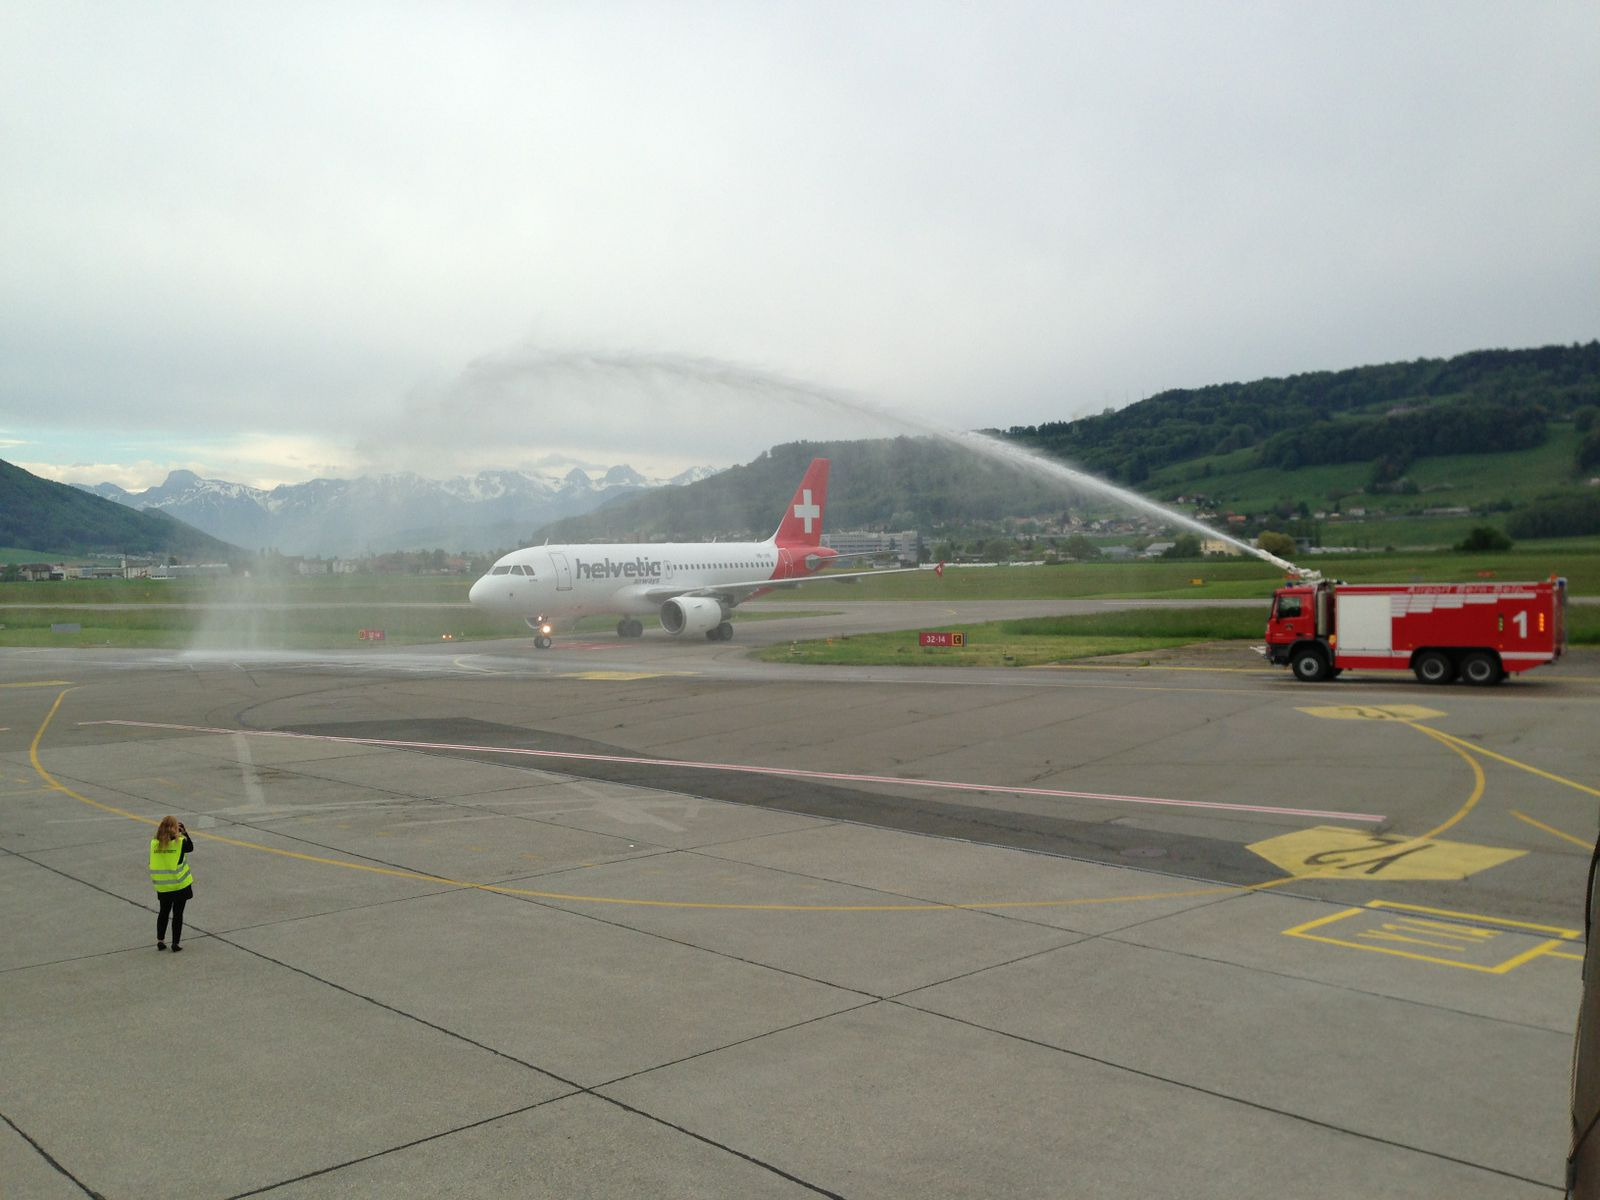 1st Helvetic A319 coming to Bern